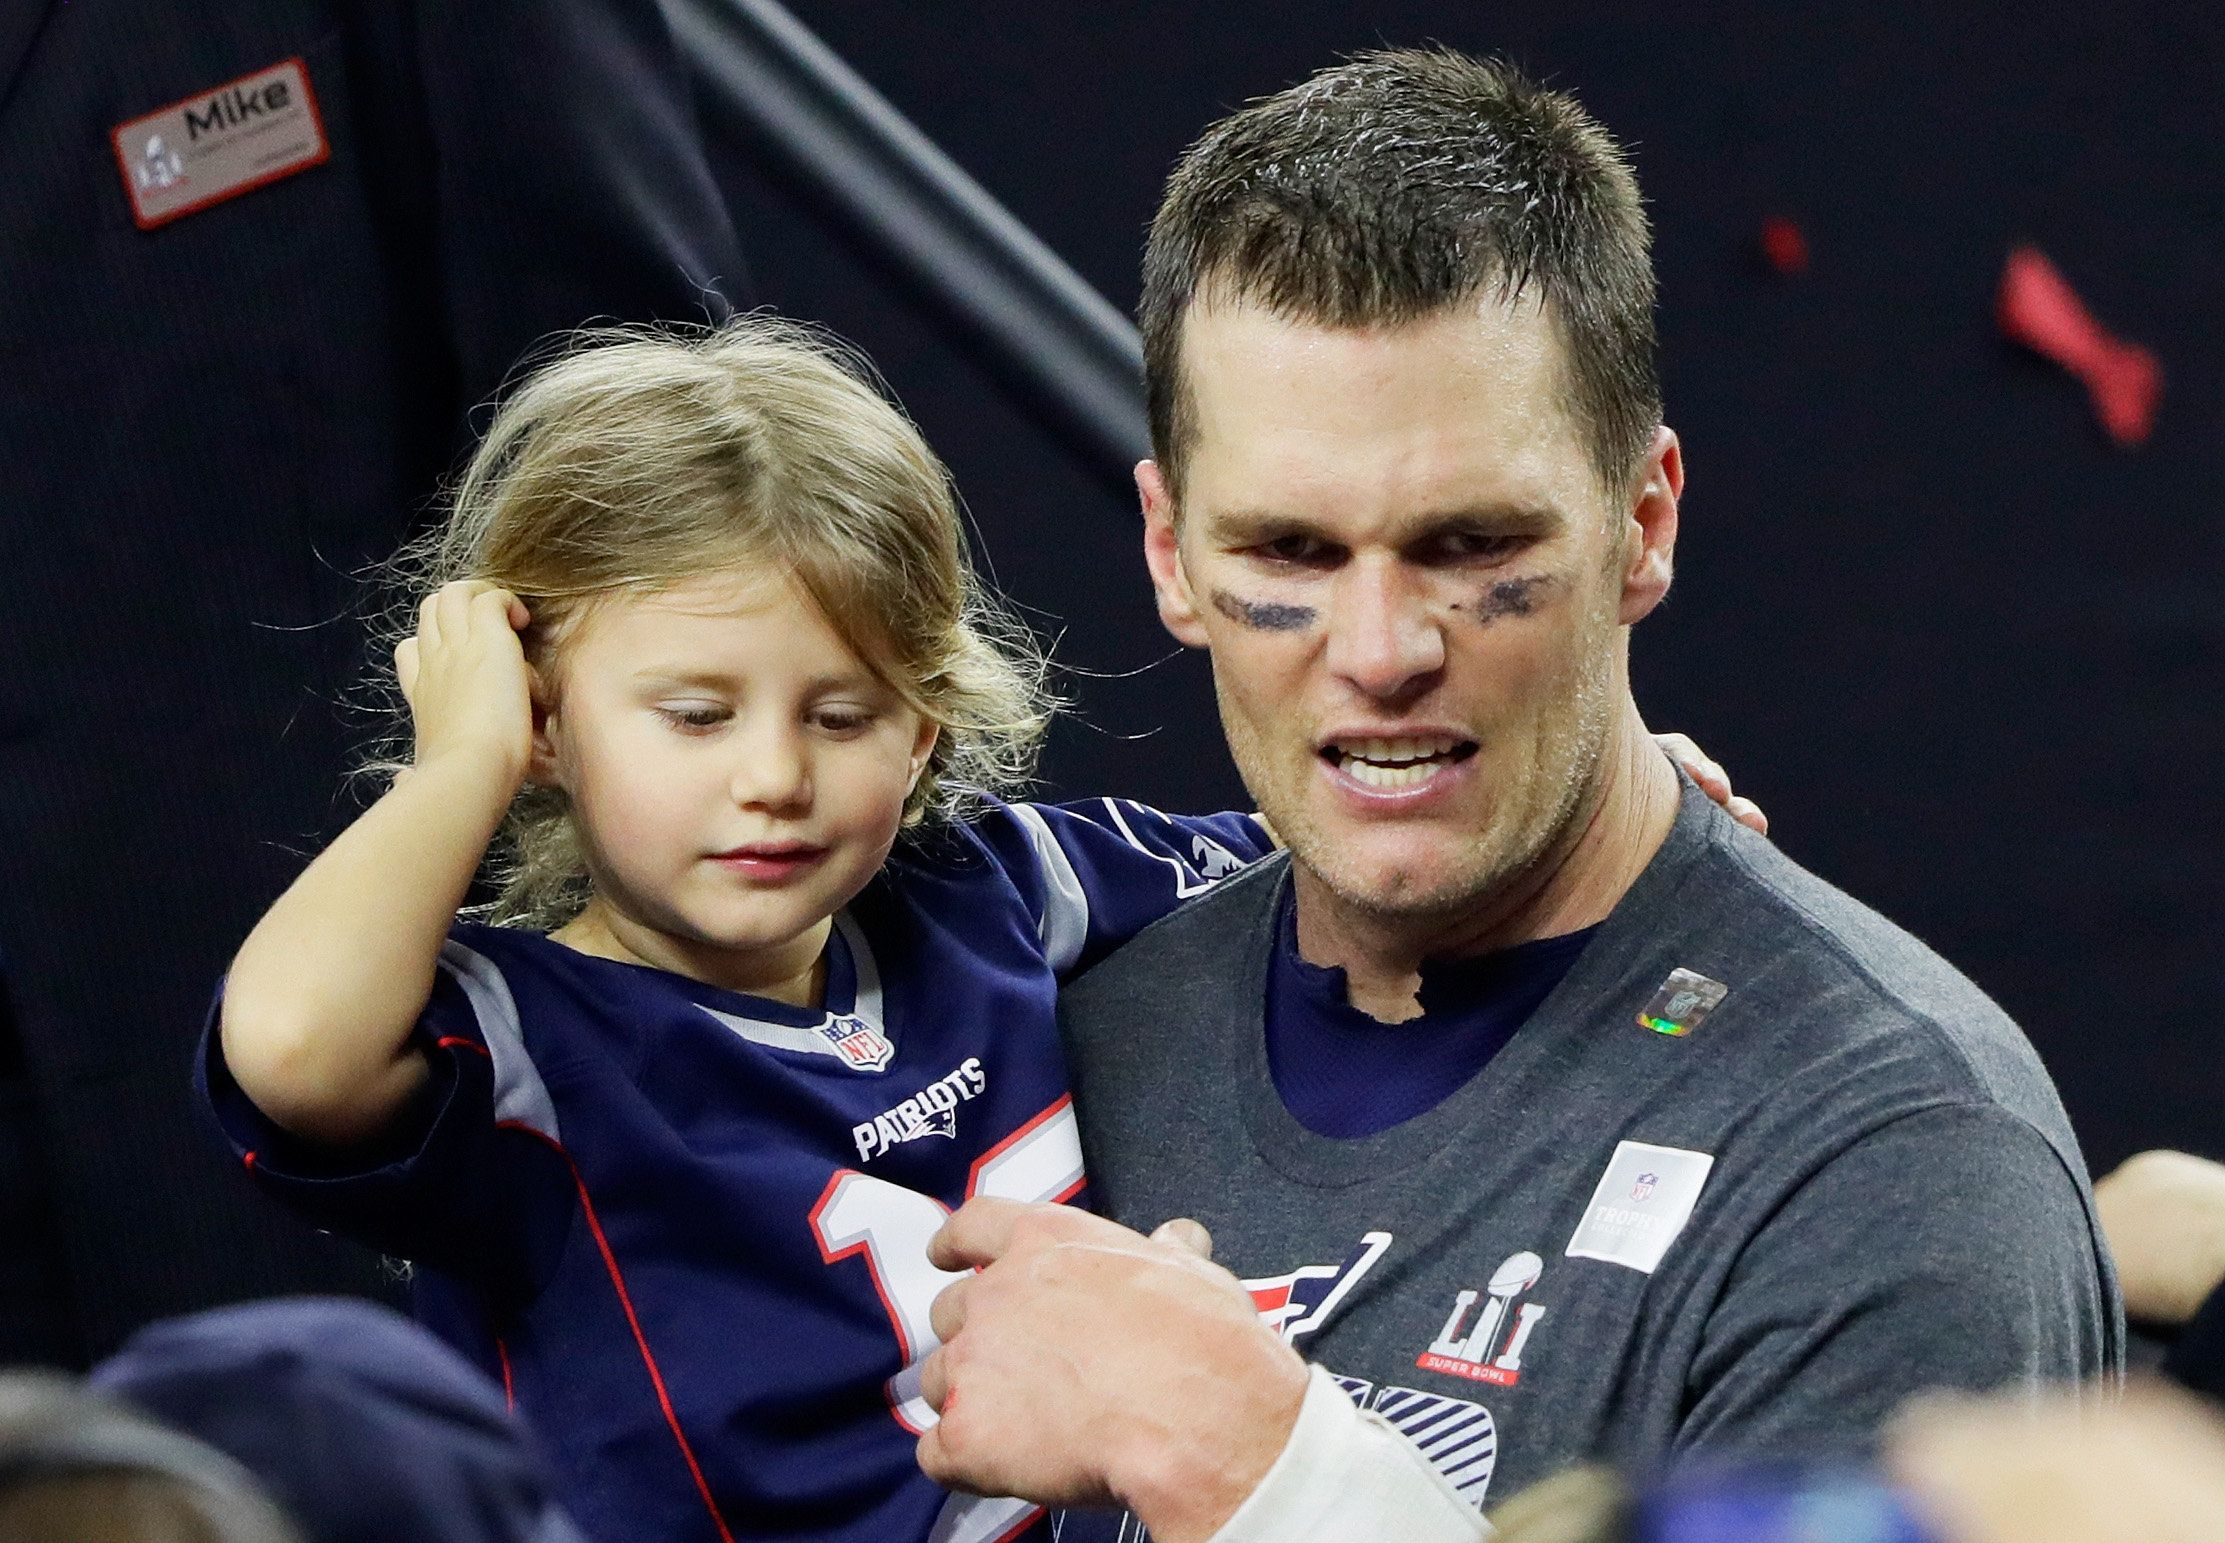 HOUSTON, TX - FEBRUARY 05:  Tom Brady #12 of the New England Patriots celebrates with his daughter Vivian after defeating the Atlanta Falcons 34-28 in overtime to win Super Bowl 51 at NRG Stadium on February 5, 2017 in Houston, Texas.  (Photo by Jamie Squire/Getty Images)